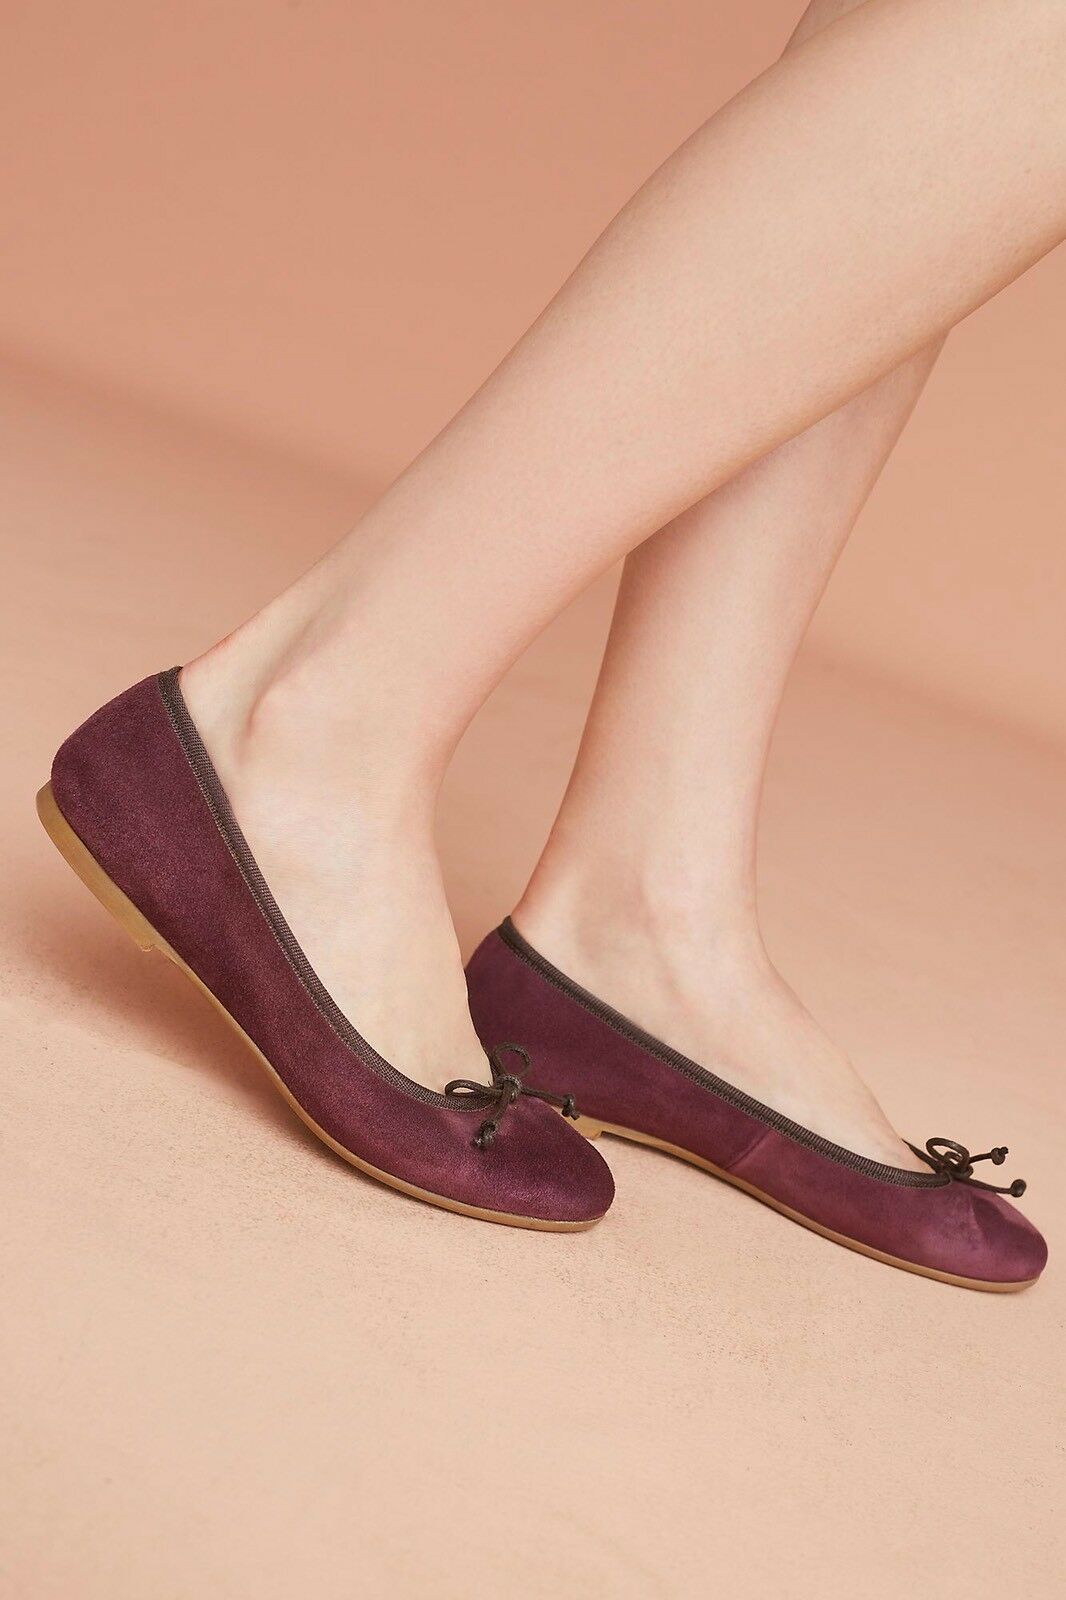 ANTHROPOLOGIE ELIA.B FLATS color PURPLE PLUM SUEDE BALLERINA ITALY SZ 39